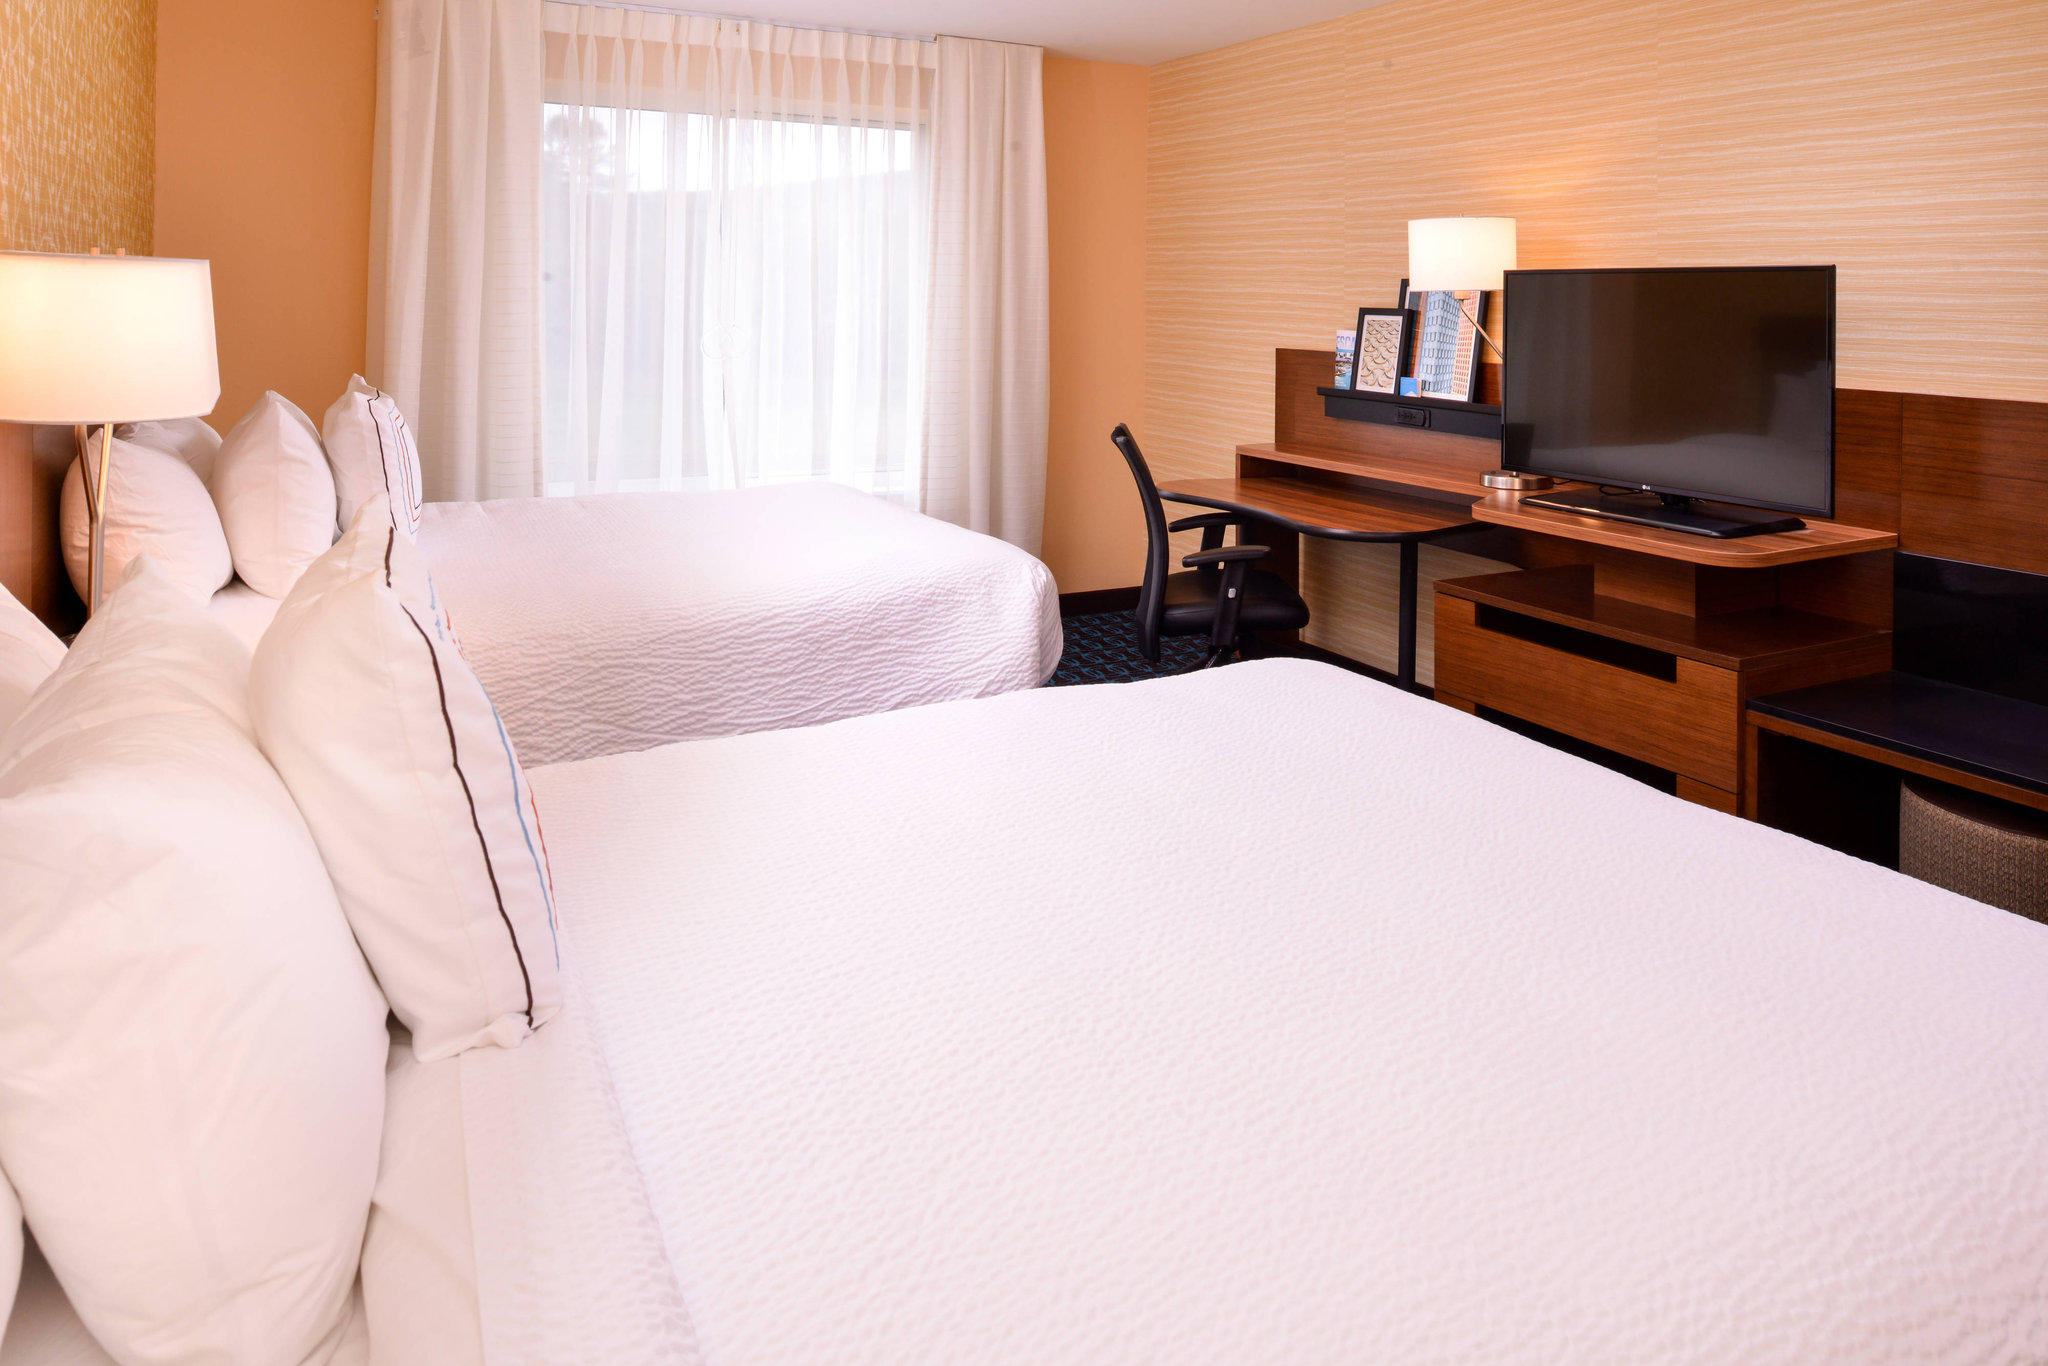 Fairfield Inn & Suites by Marriott Plymouth White Mountains